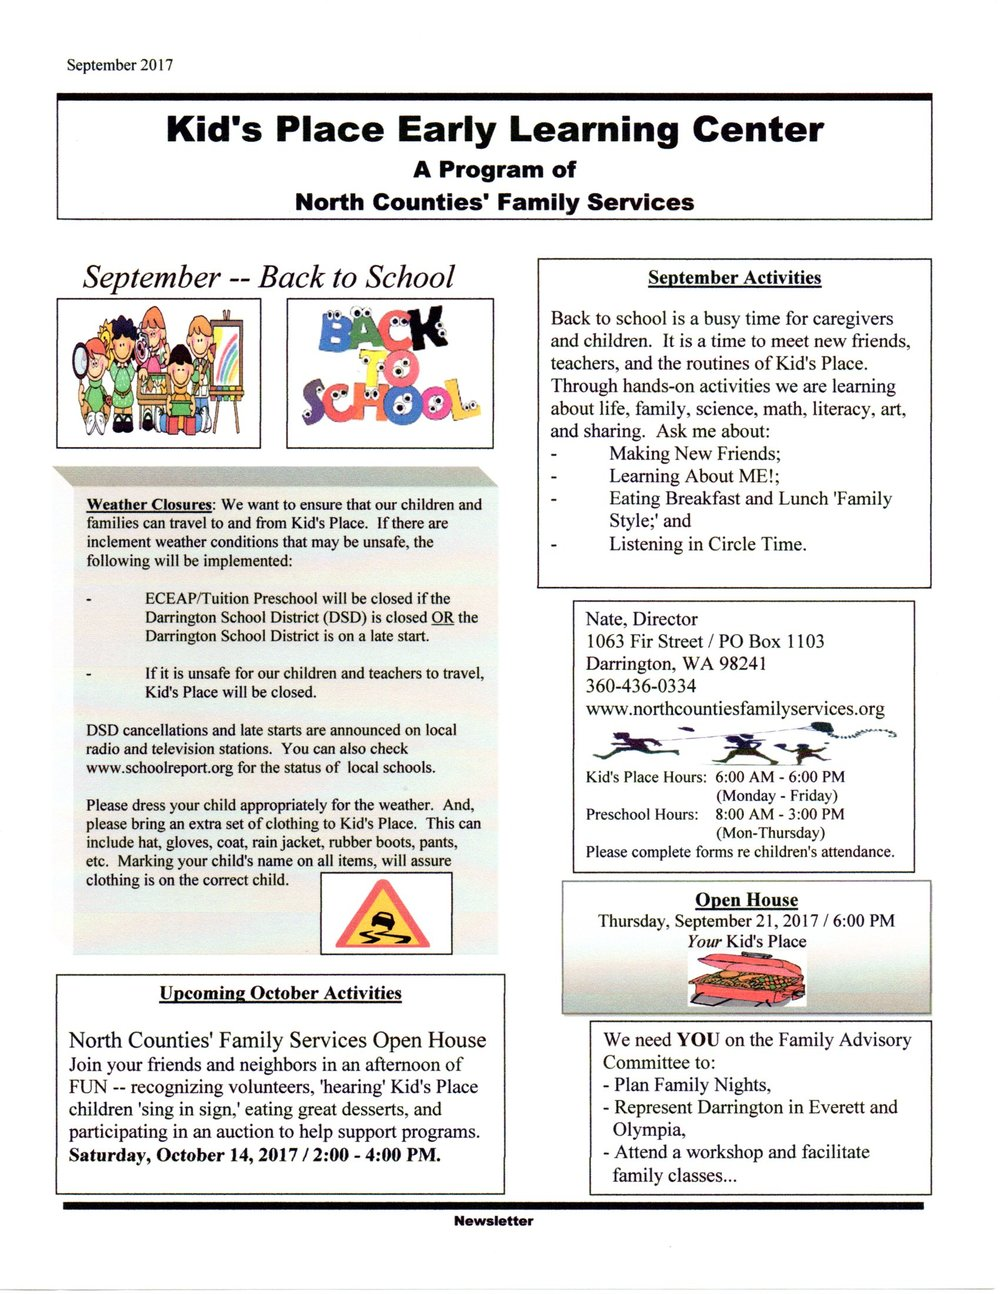 September 2017 Monthly Flyer.jpg